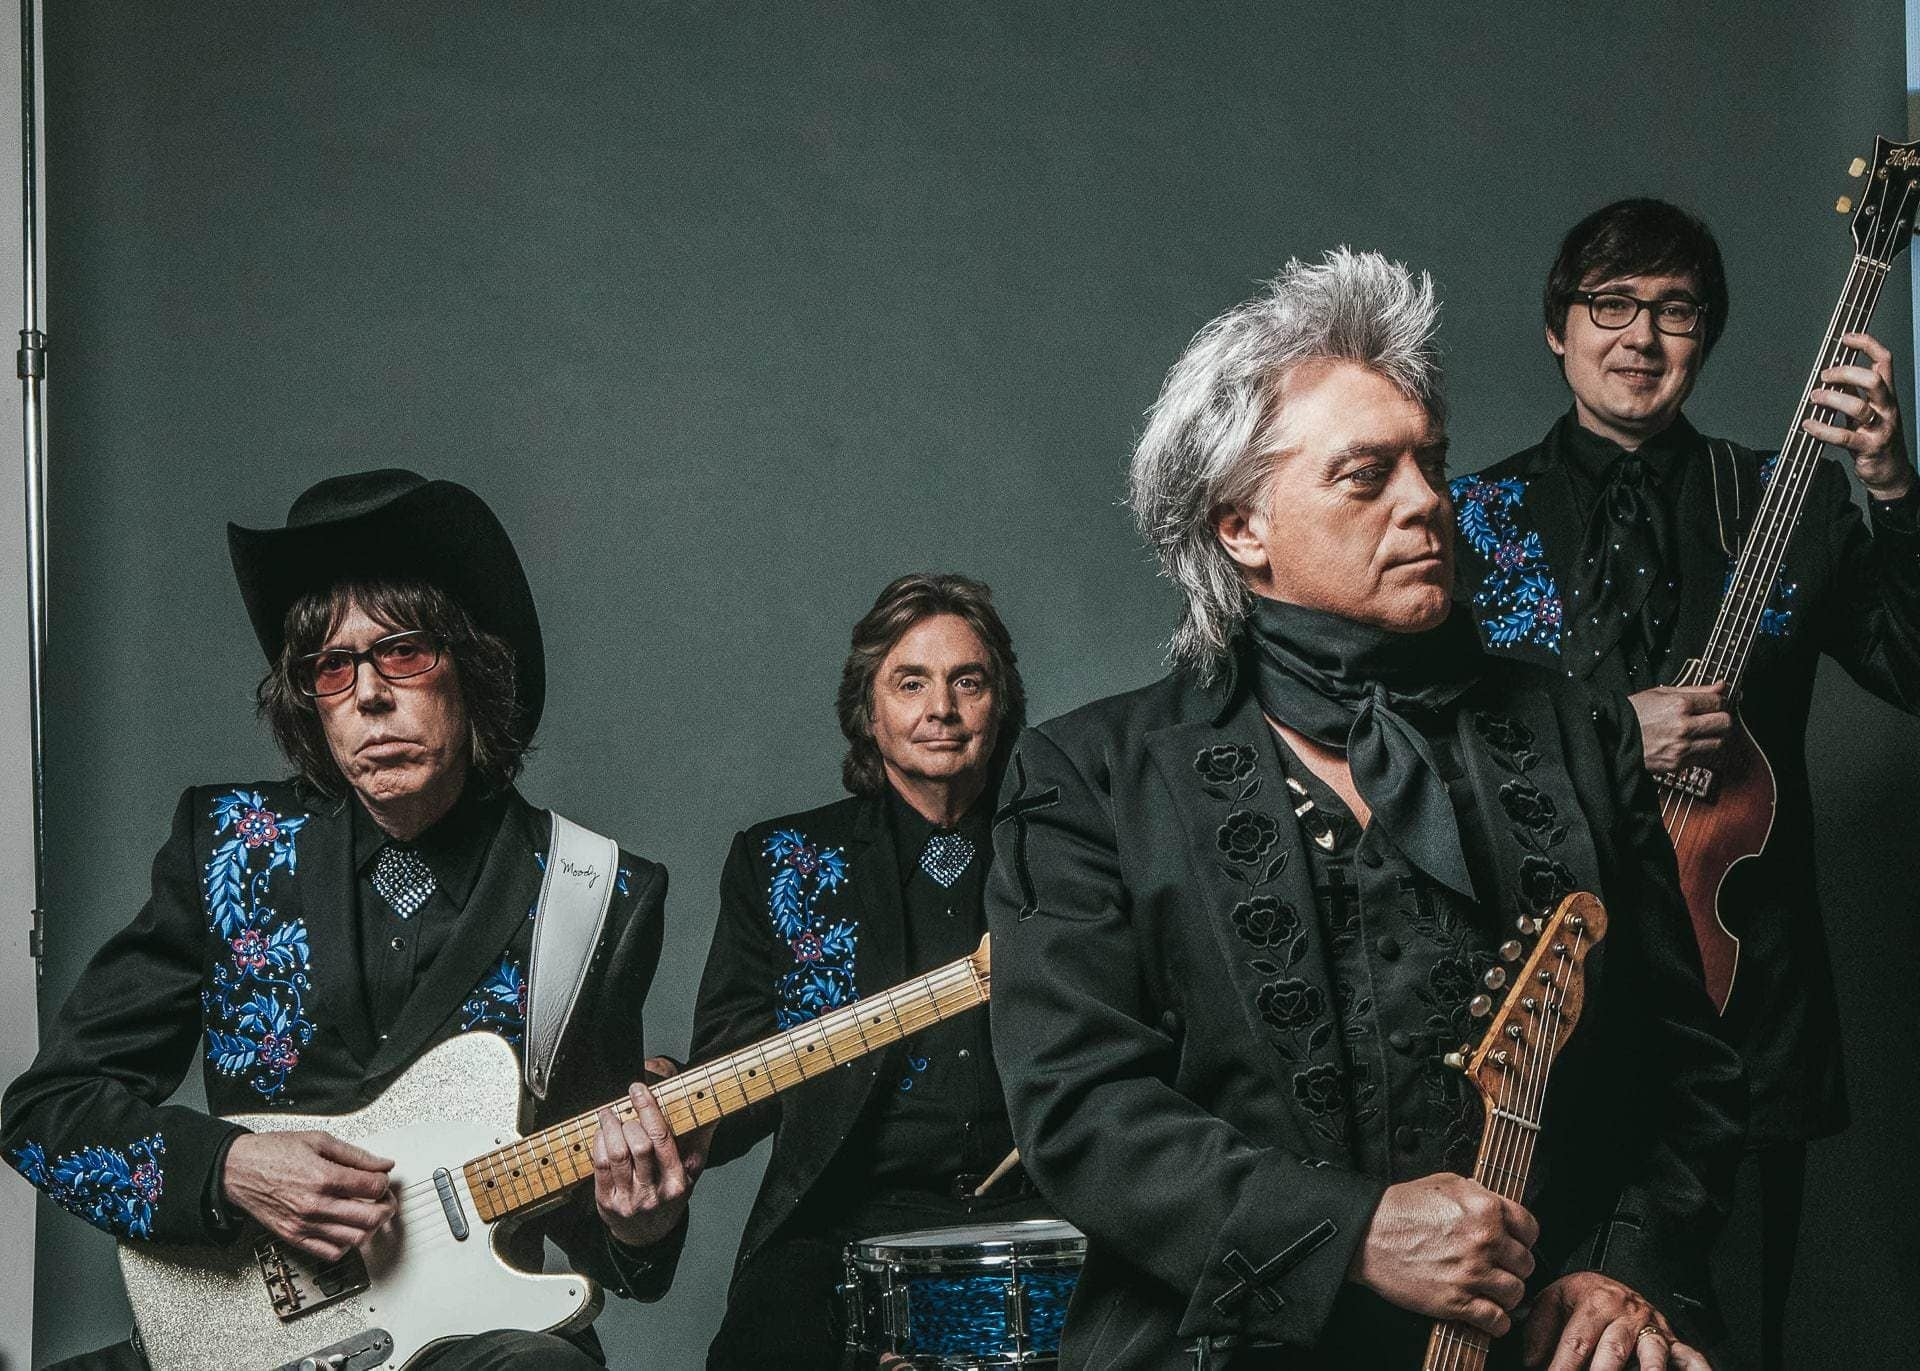 Marty Stuart and His Fabulous Superlatives to headline Forest Festival show